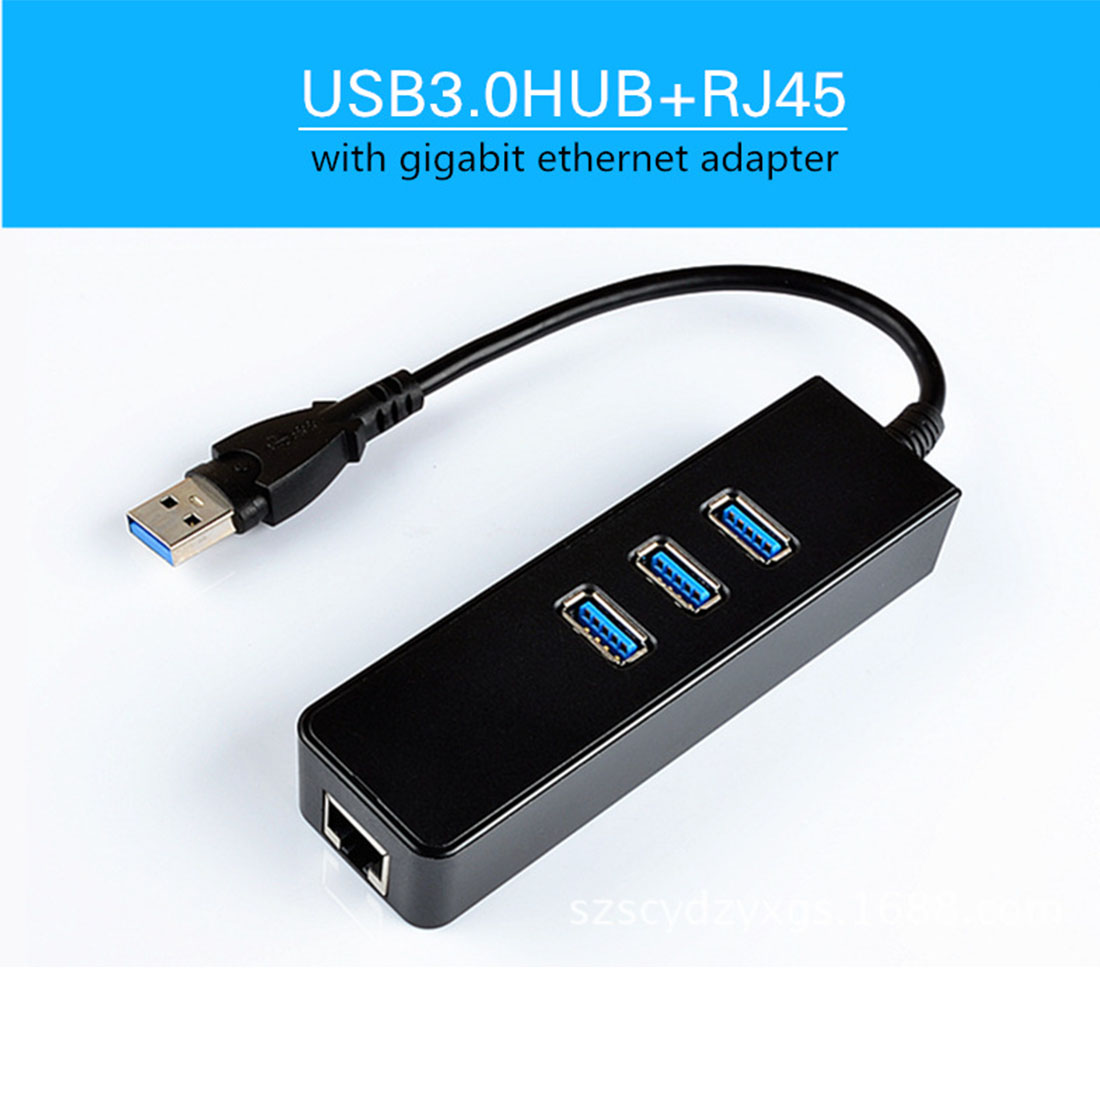 נוייקרה USB 3.0 1000Mbps Gigabit Ethernet מתאם USB ל RJ45 לאן כרטיס רשת 3 יציאת USB3.0 Hub